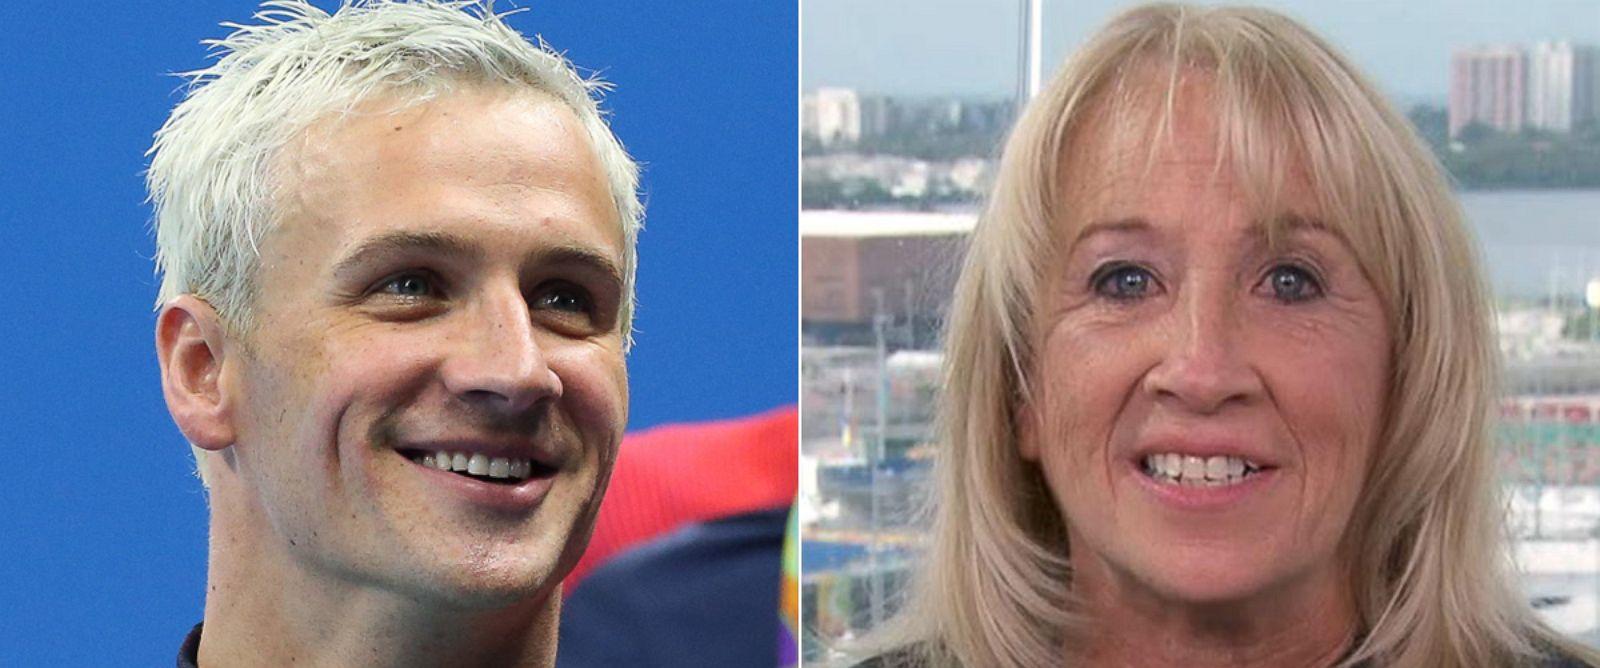 ryan lochte can't bury story his mom told press